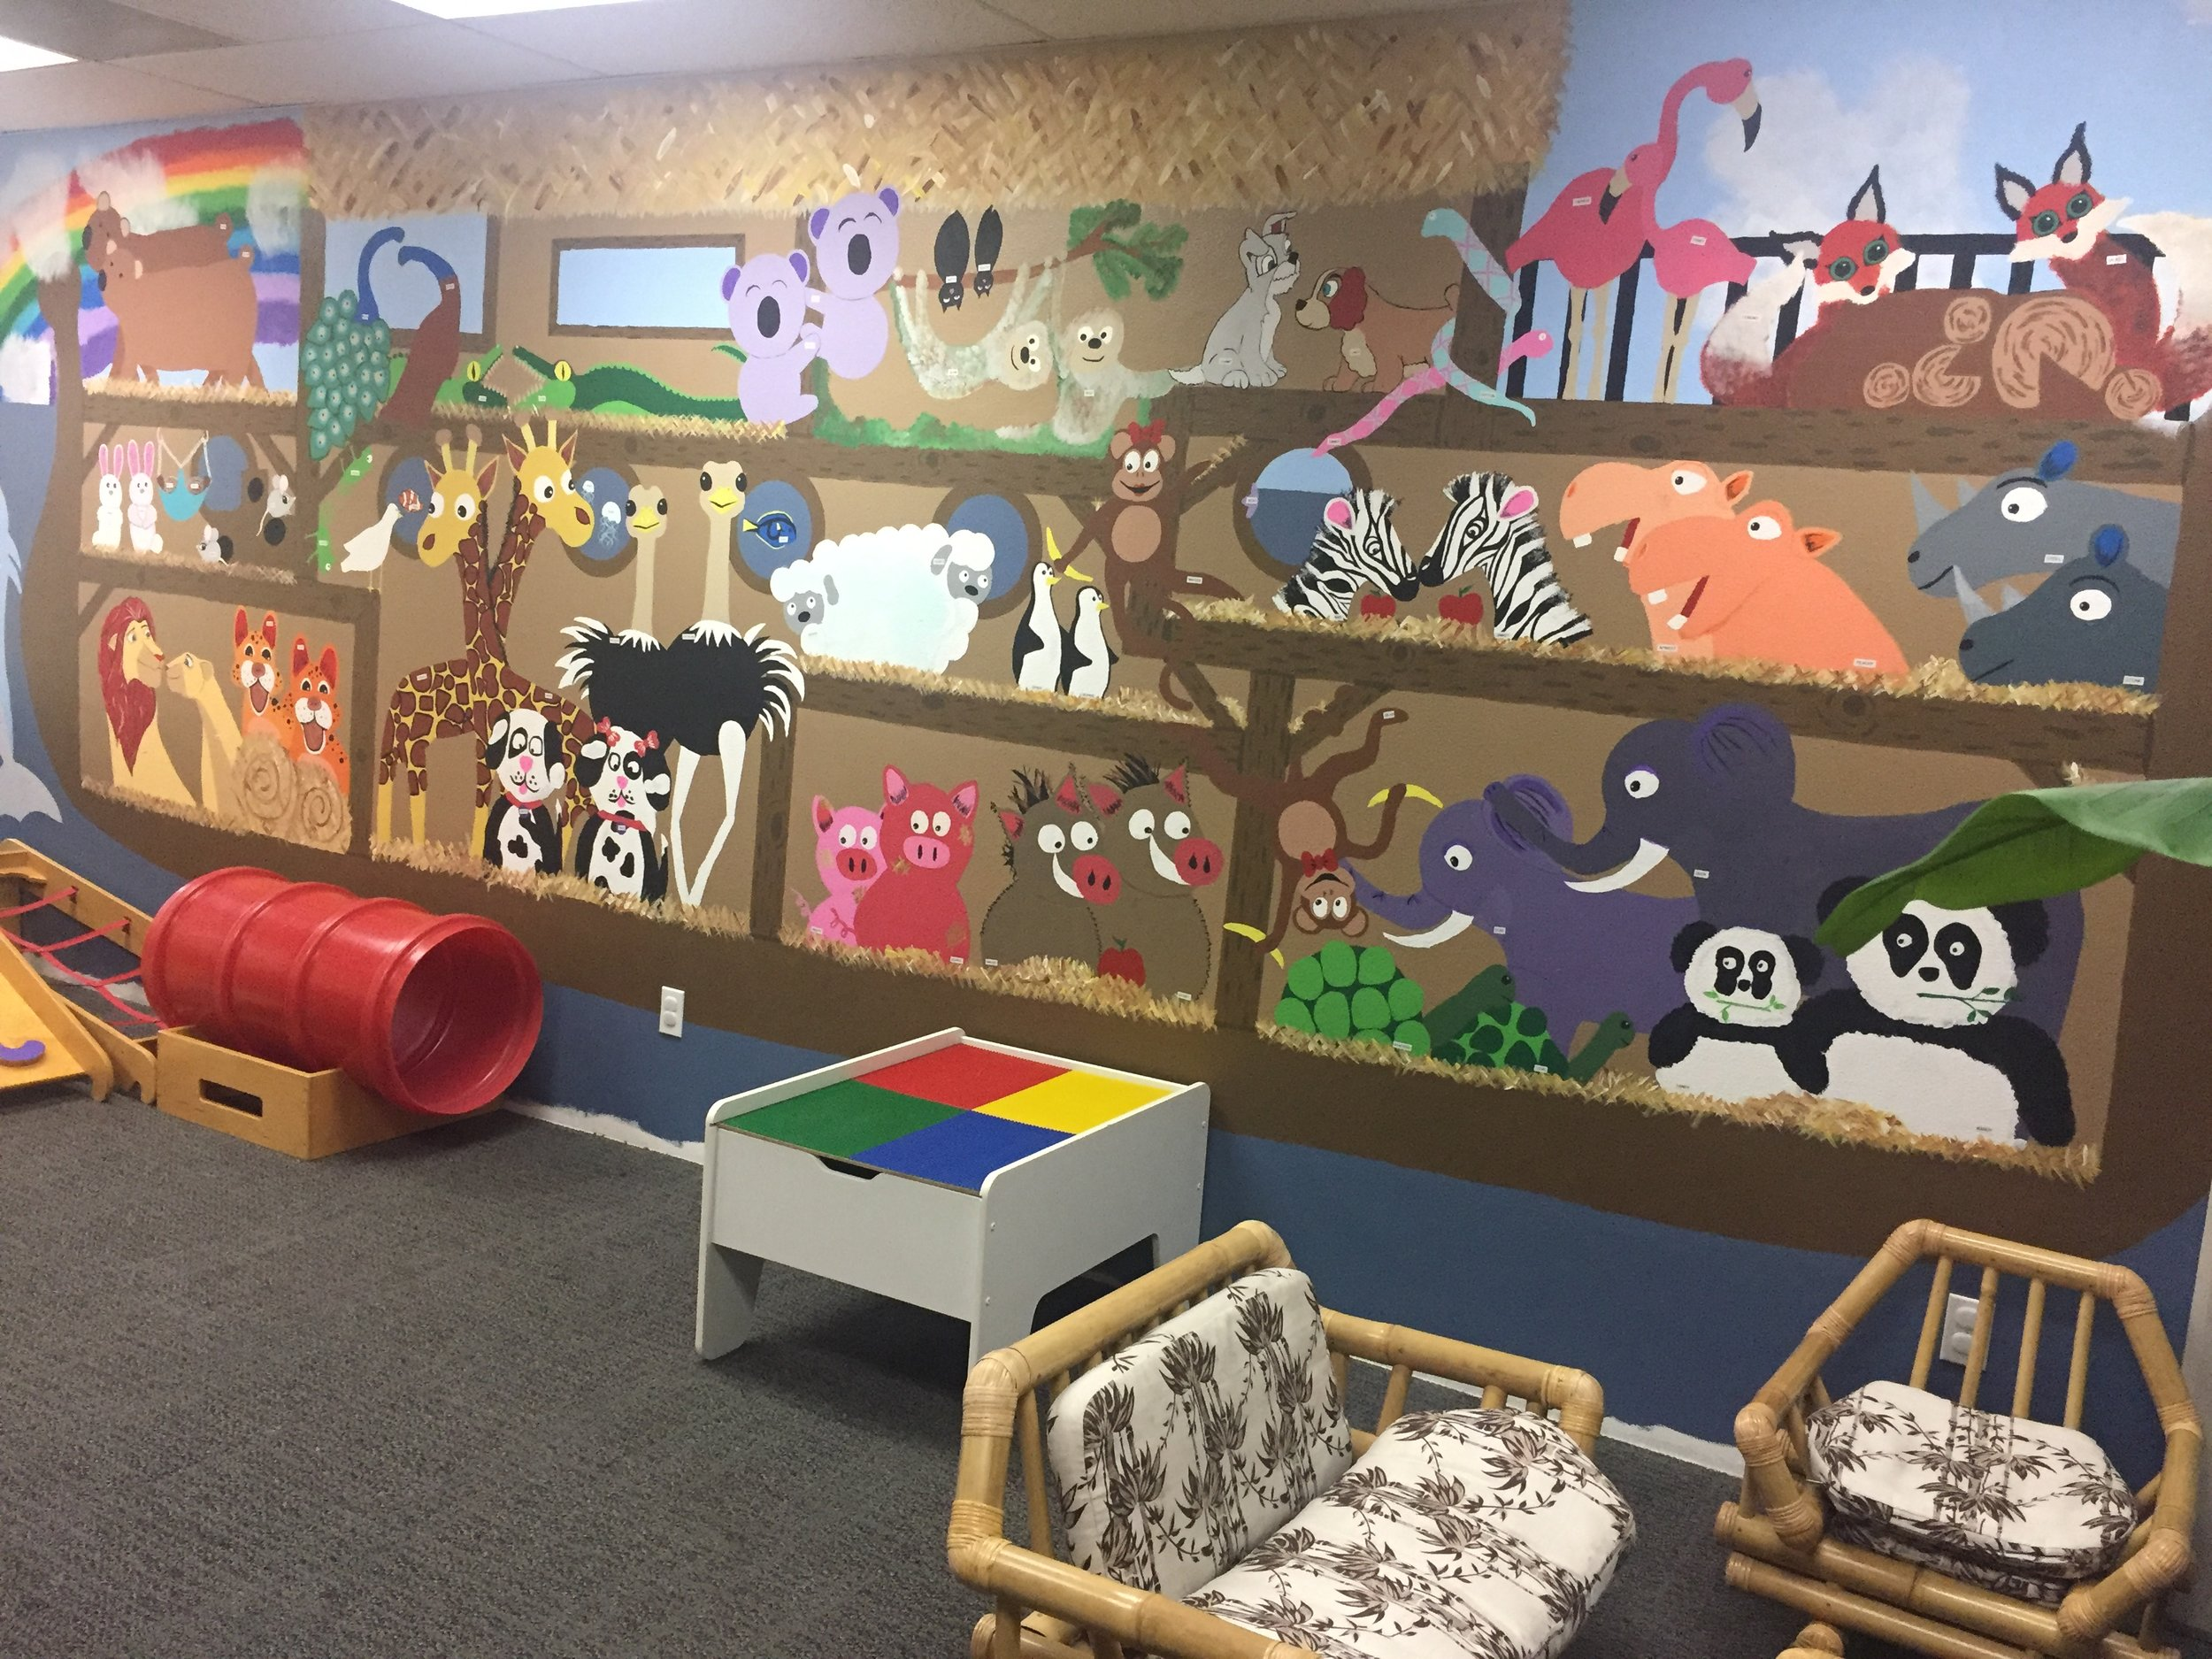 Noah's Ark Children's Center - This handprinted mural in the Kids Welcome Center brings the story of Noah's ark to life!